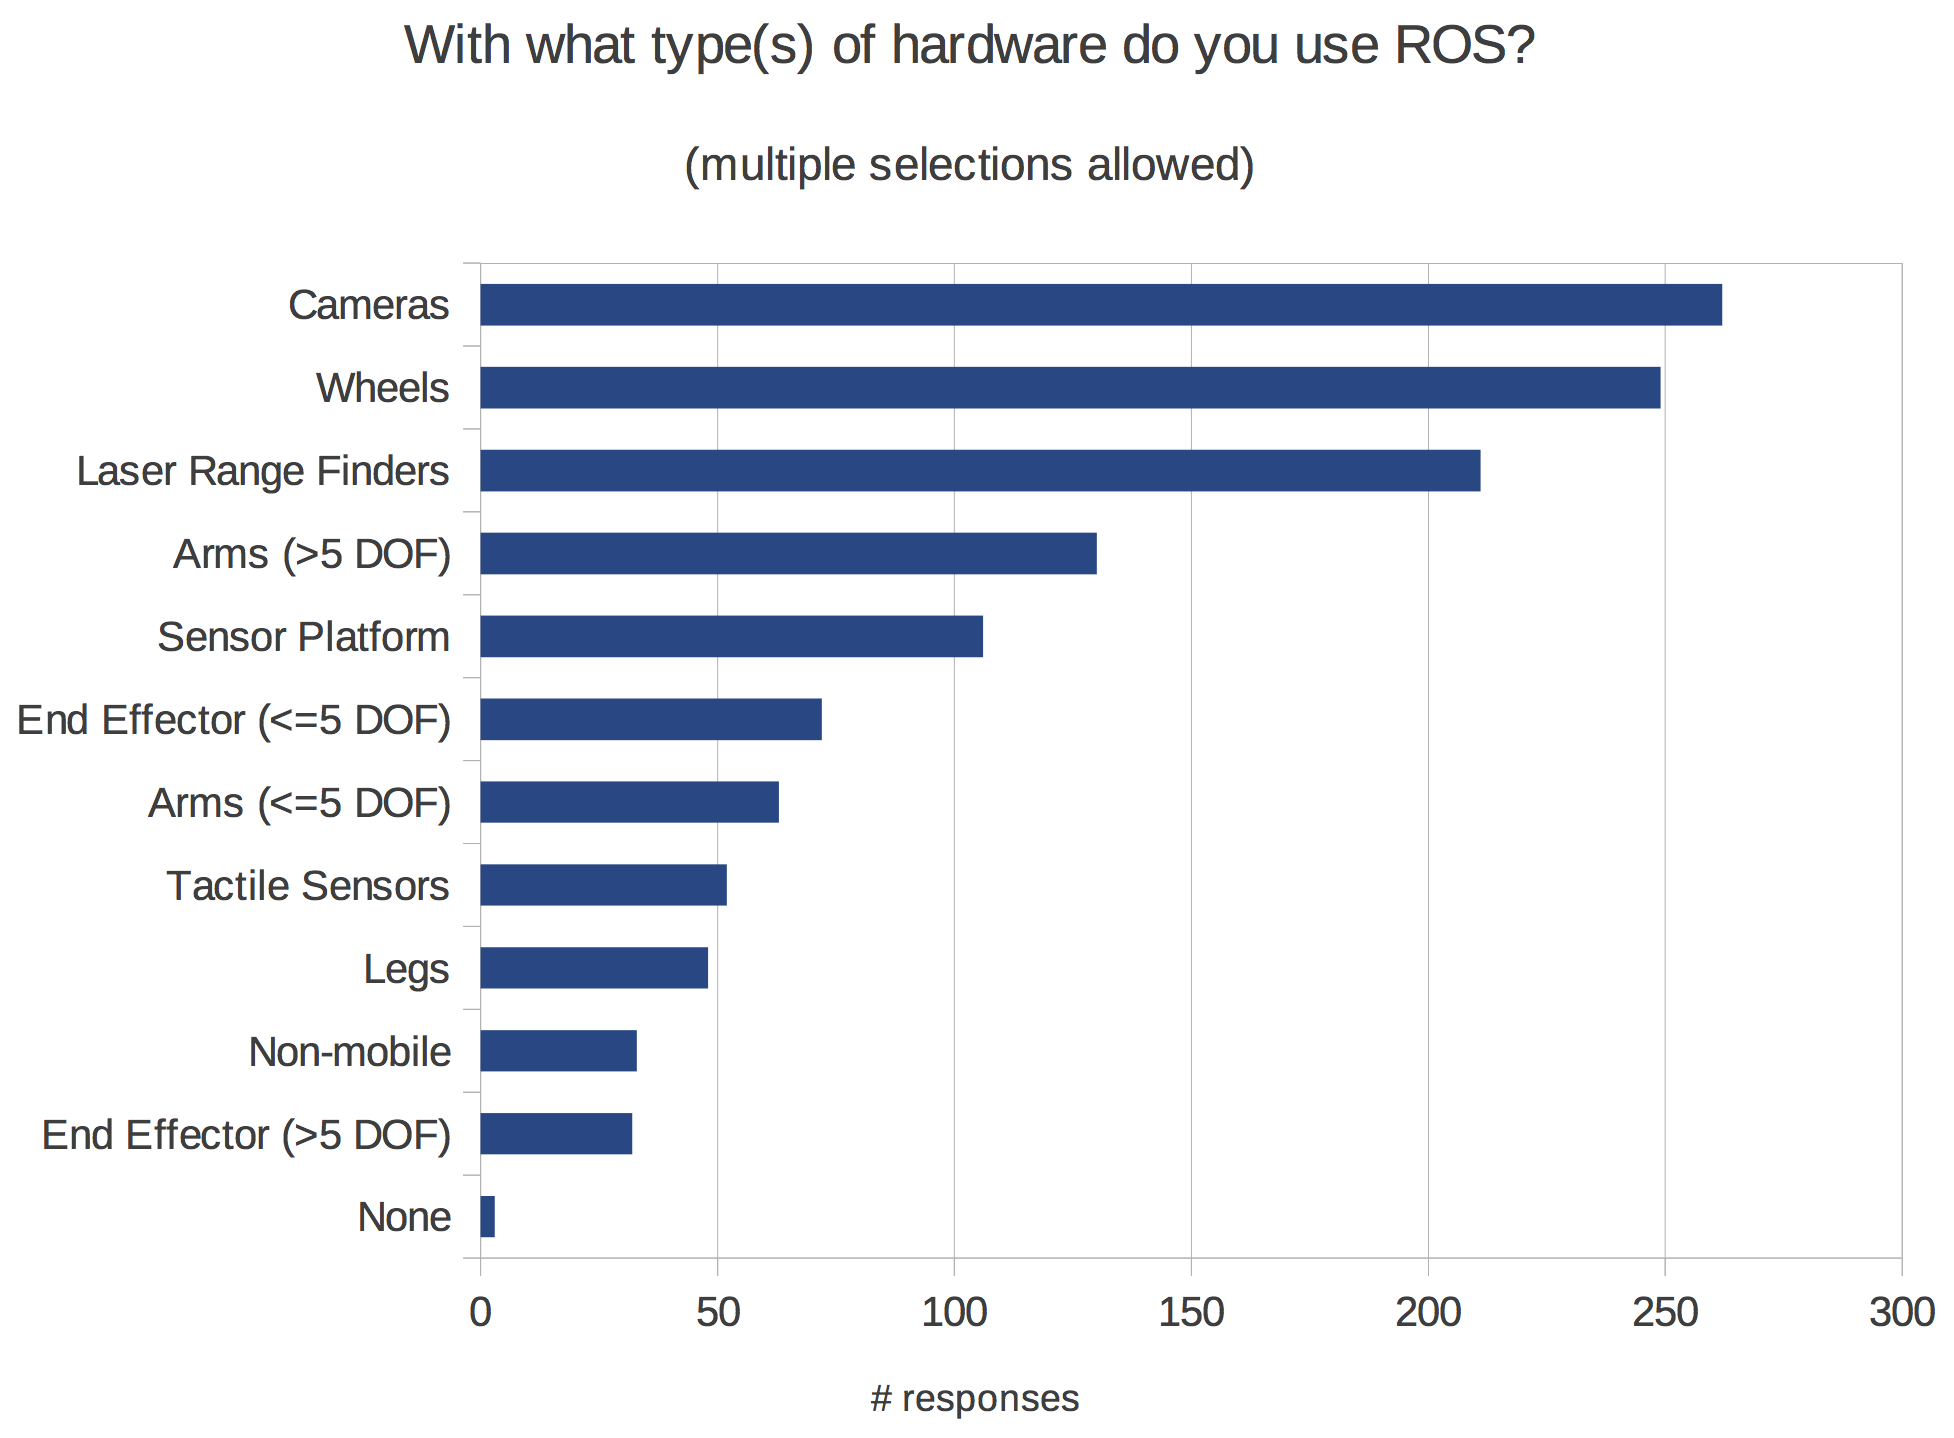 http://www.ros.org/news/2014/04/01/which-hardware.png